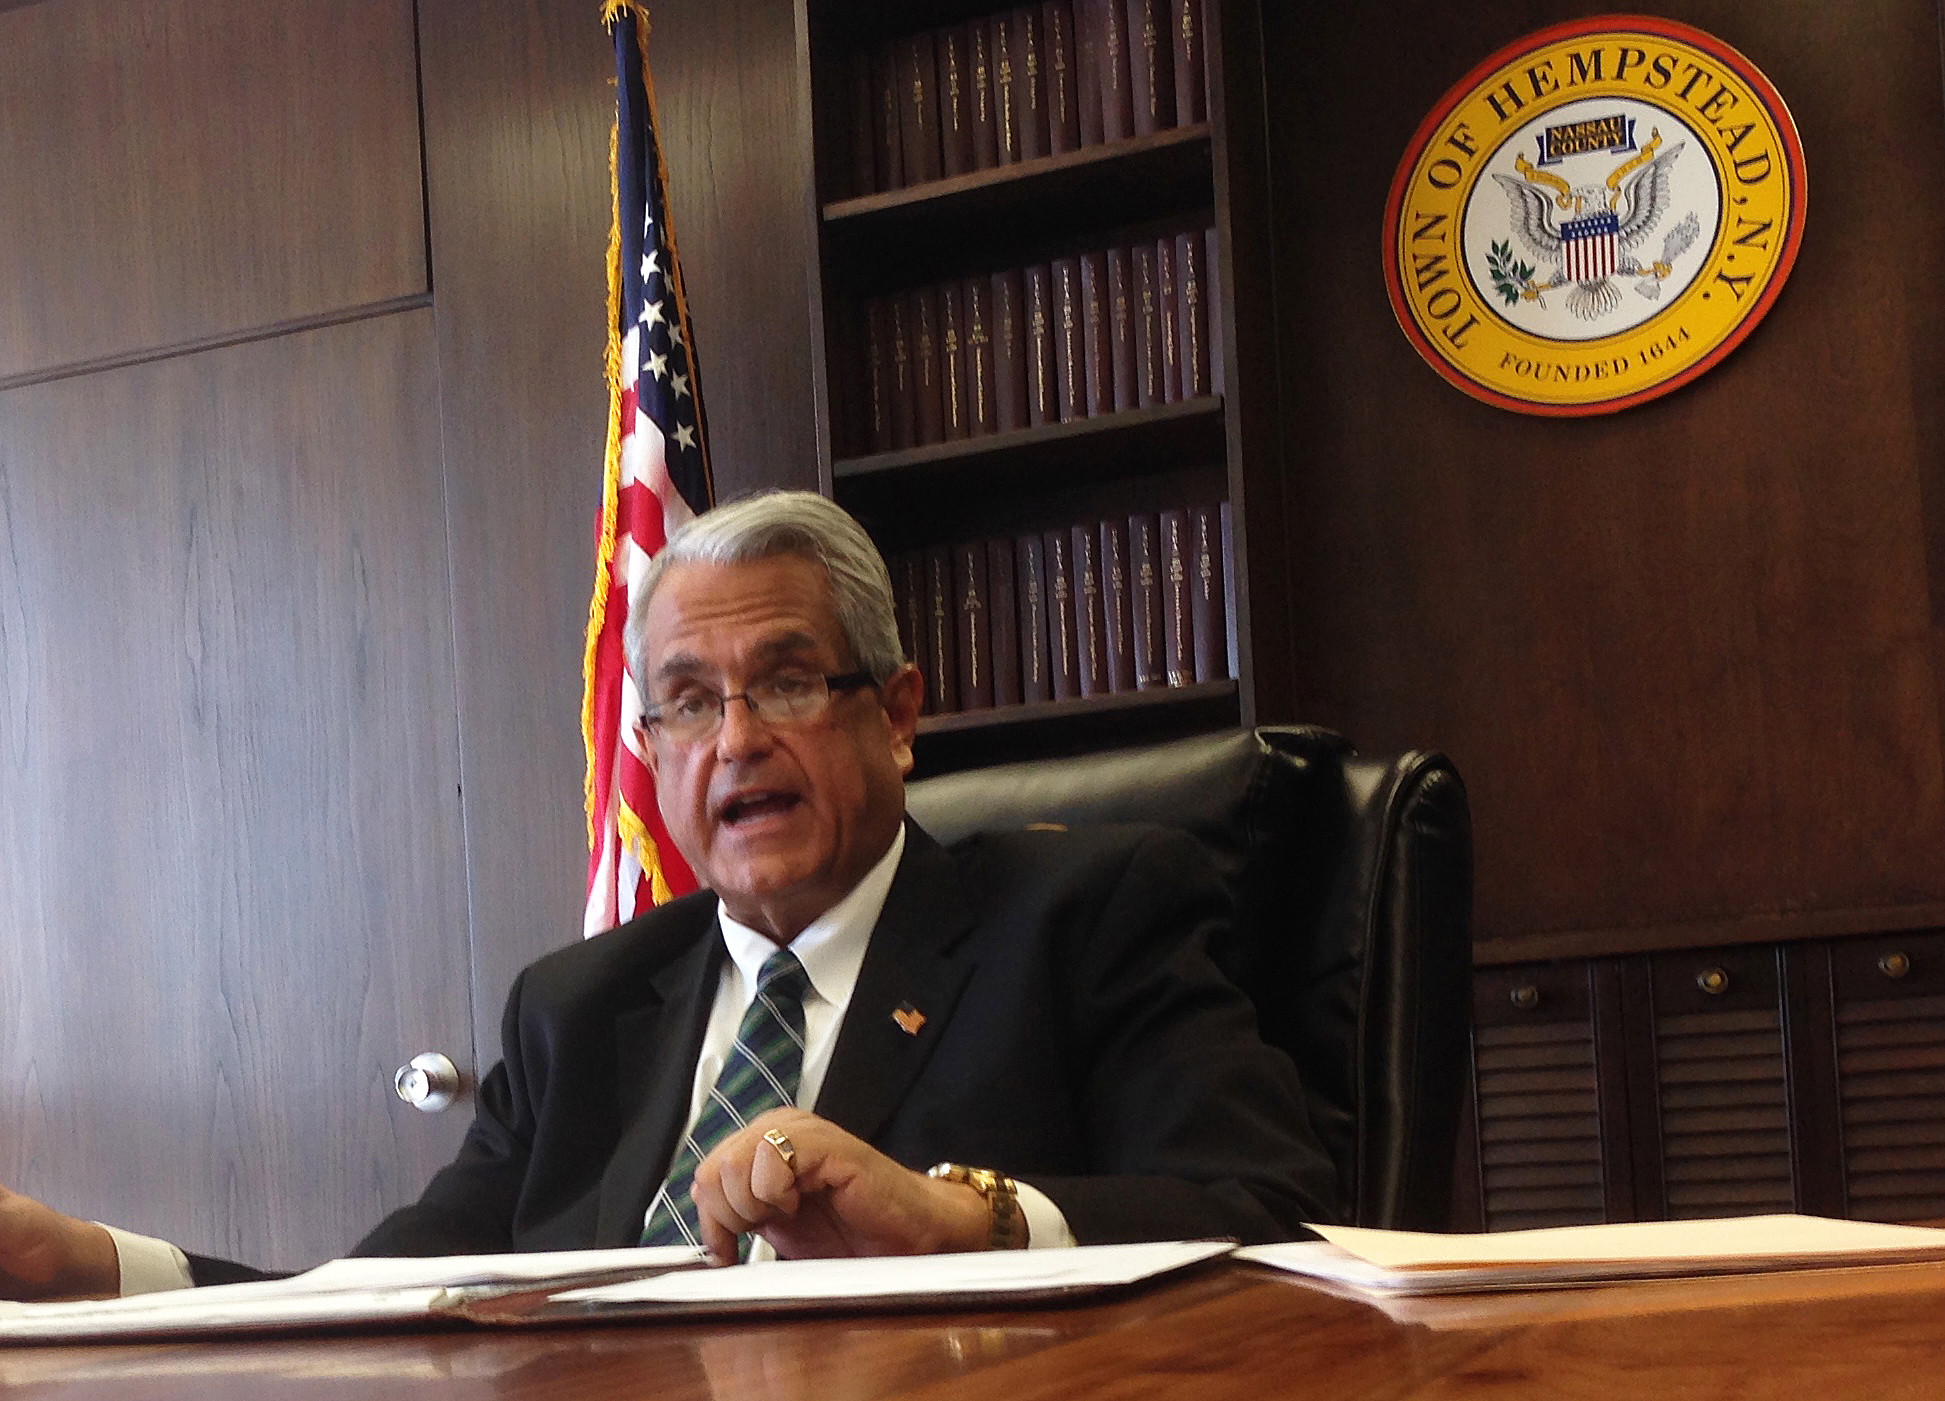 Town of Hempstead Supervisor Anthony Santino offered up a series of ethics reforms proposals this week. Among them, he is calling for an income limit of $125,000 for Council members.